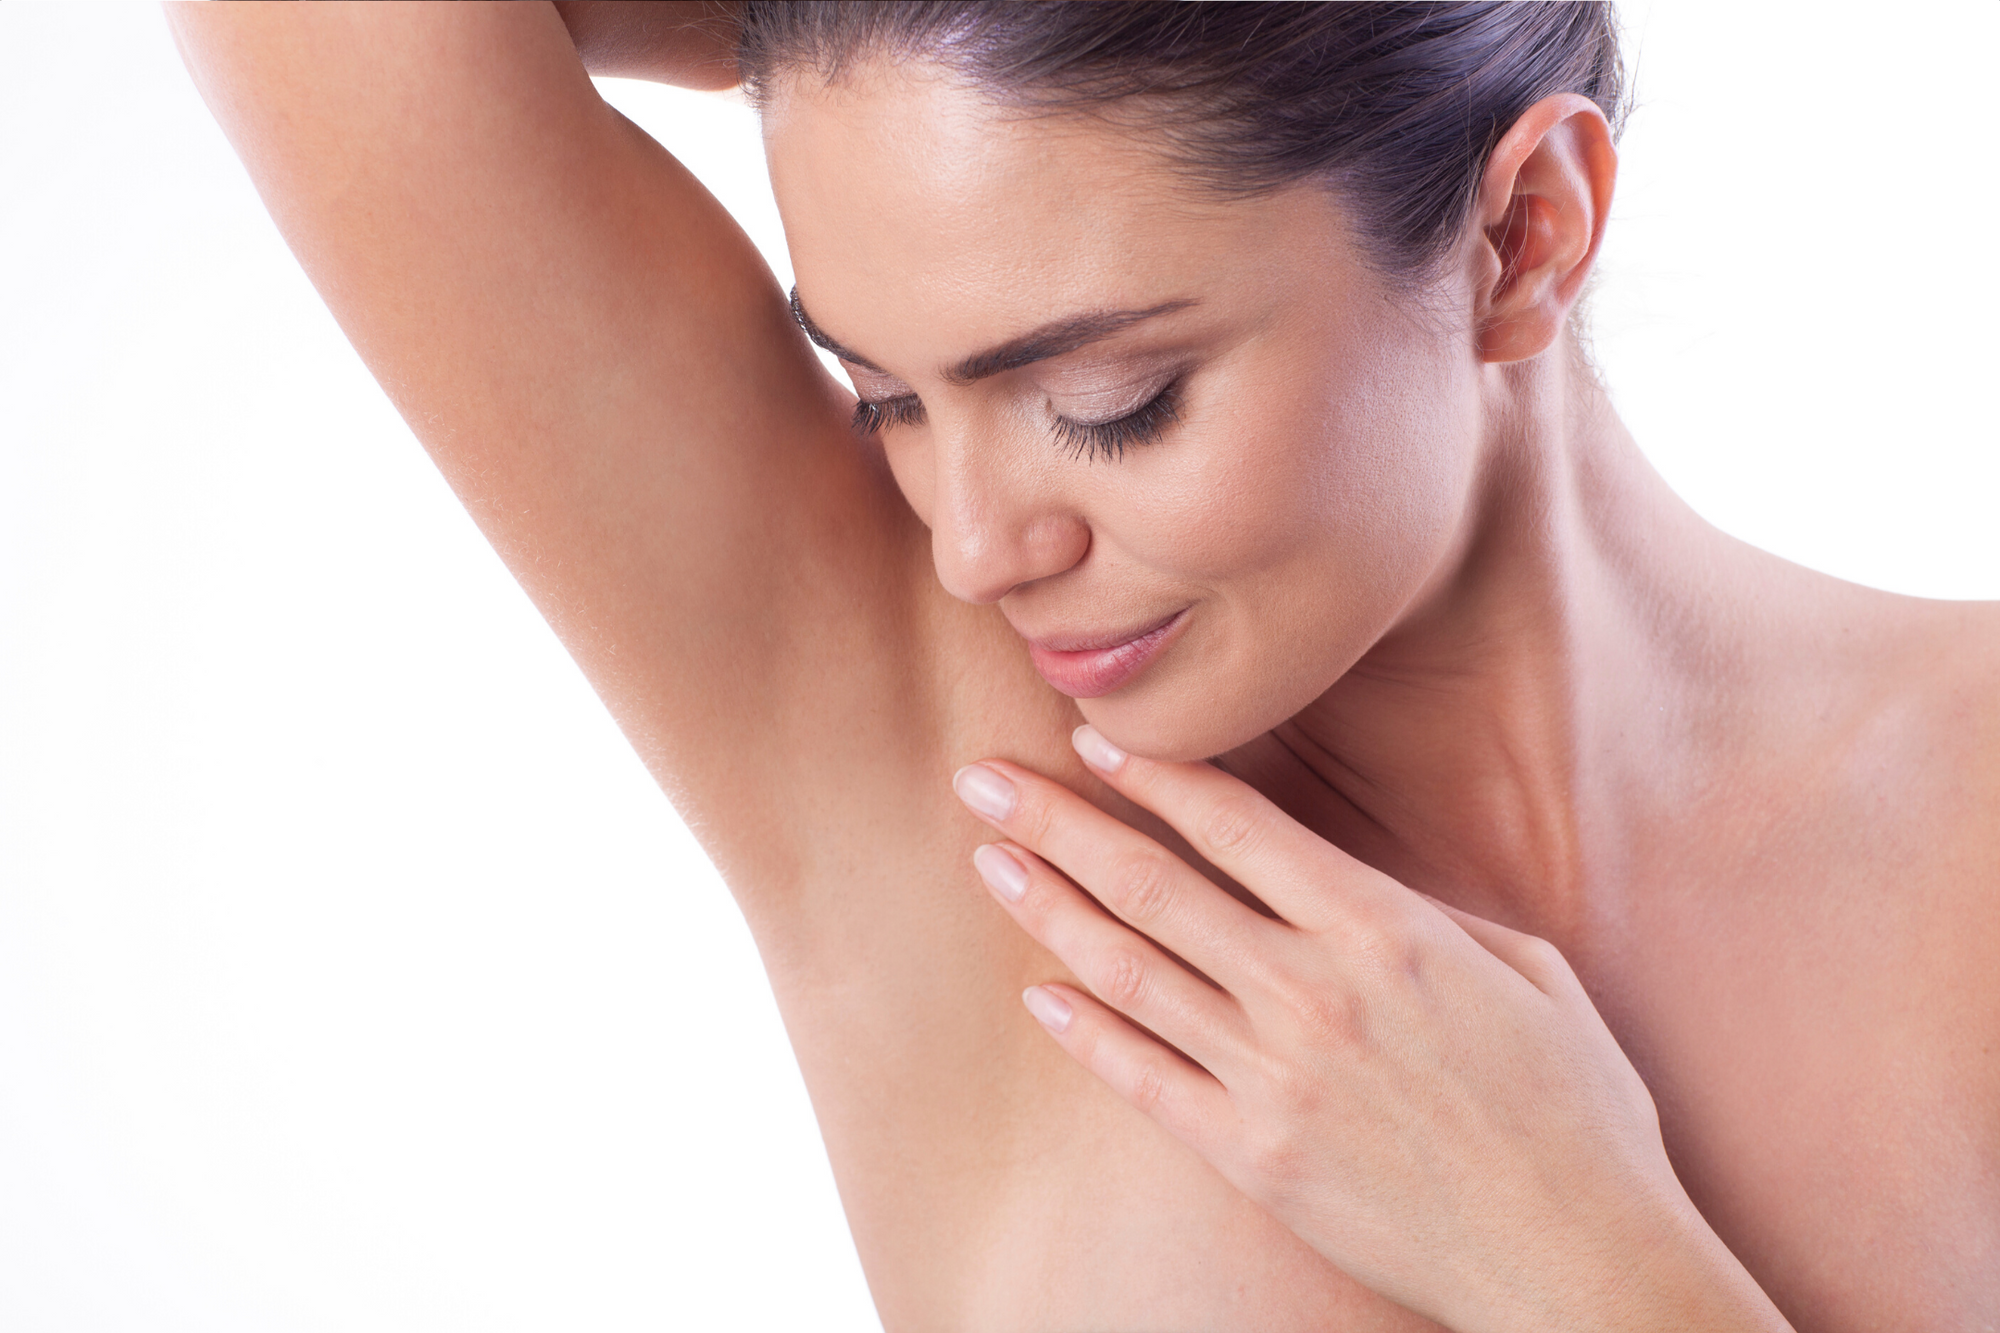 Can You Remove dark spots -And- Avoid severe skin irritation?